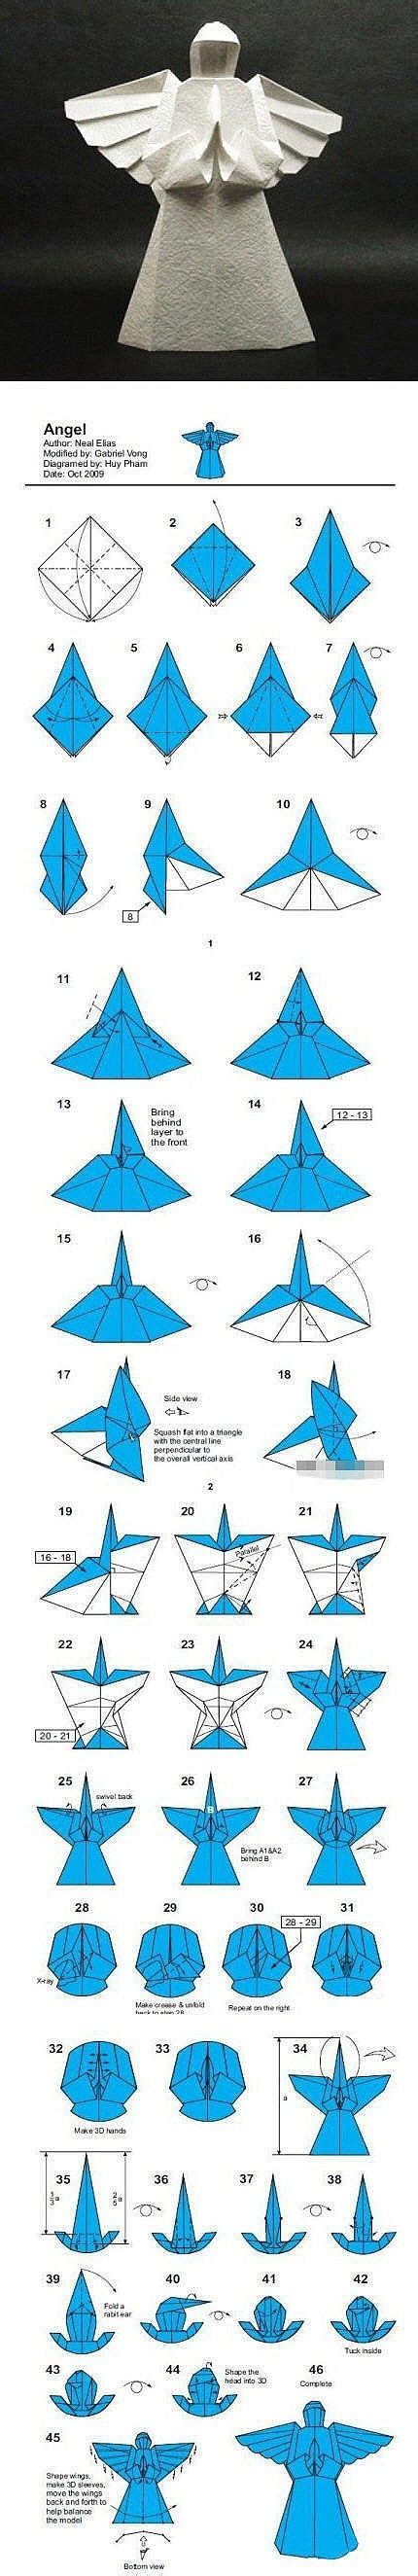 Origami Angle - origami paper and paper on